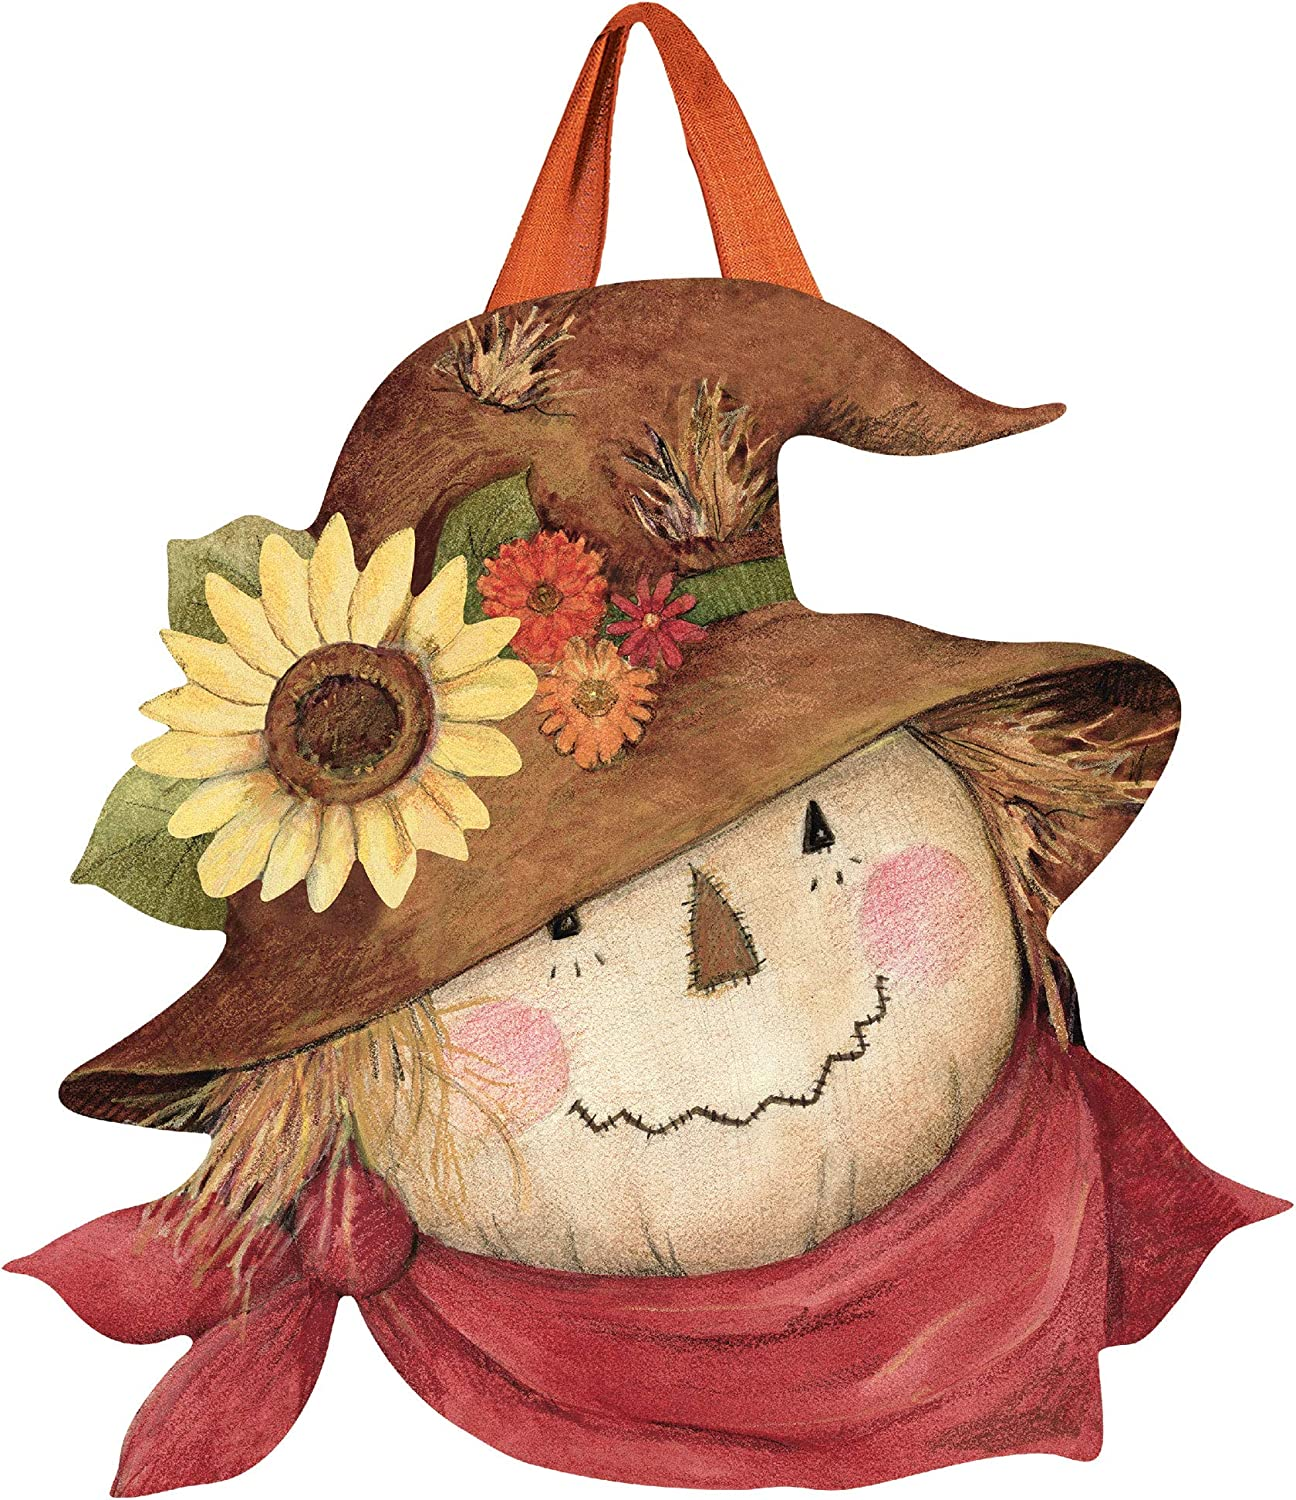 Studio M Autumn Scarecrow Fall Door Décor Decorative Front Door Sign with Colorful Ribbon Hanger, Durable Fade Resistant PVC, Made in The USA, 17.75 x 17.25 Inches